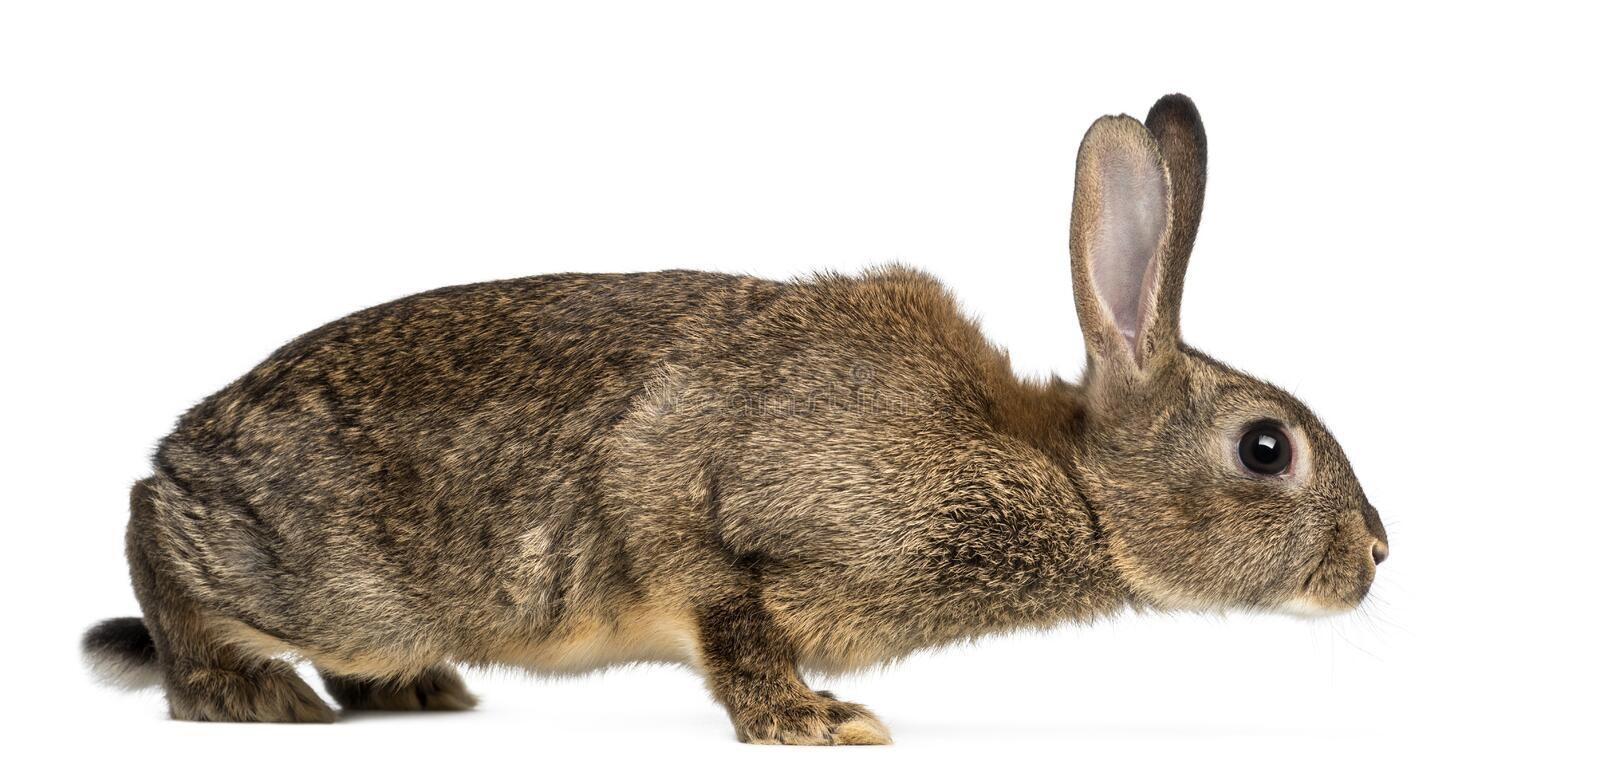 European rabbit or common rabbit, 3 months old, Oryctolagus cuniculus against white background stock photography